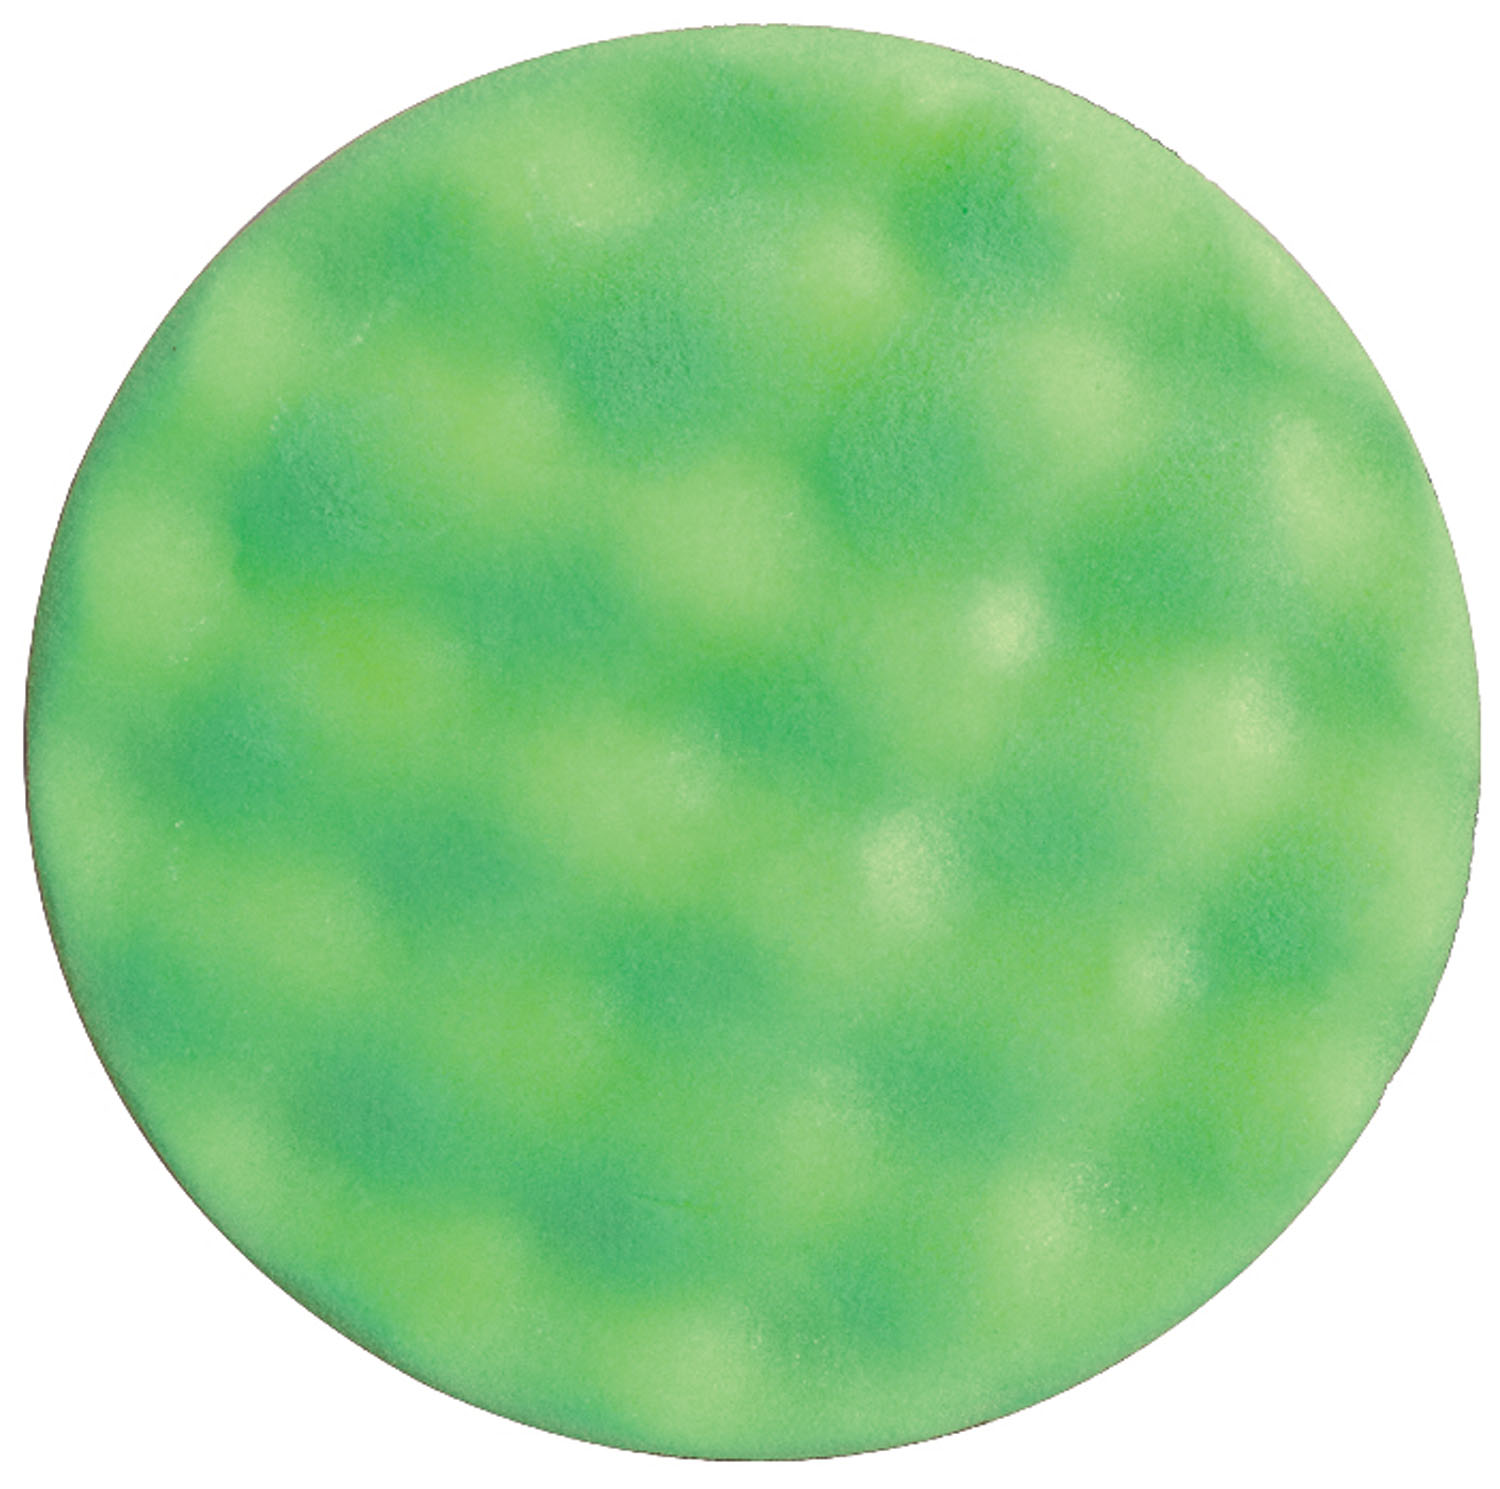 "Wizard 7.5"" x 1.5"" Polyester Foam Light Cut/Polishing Green WIZ-11305"